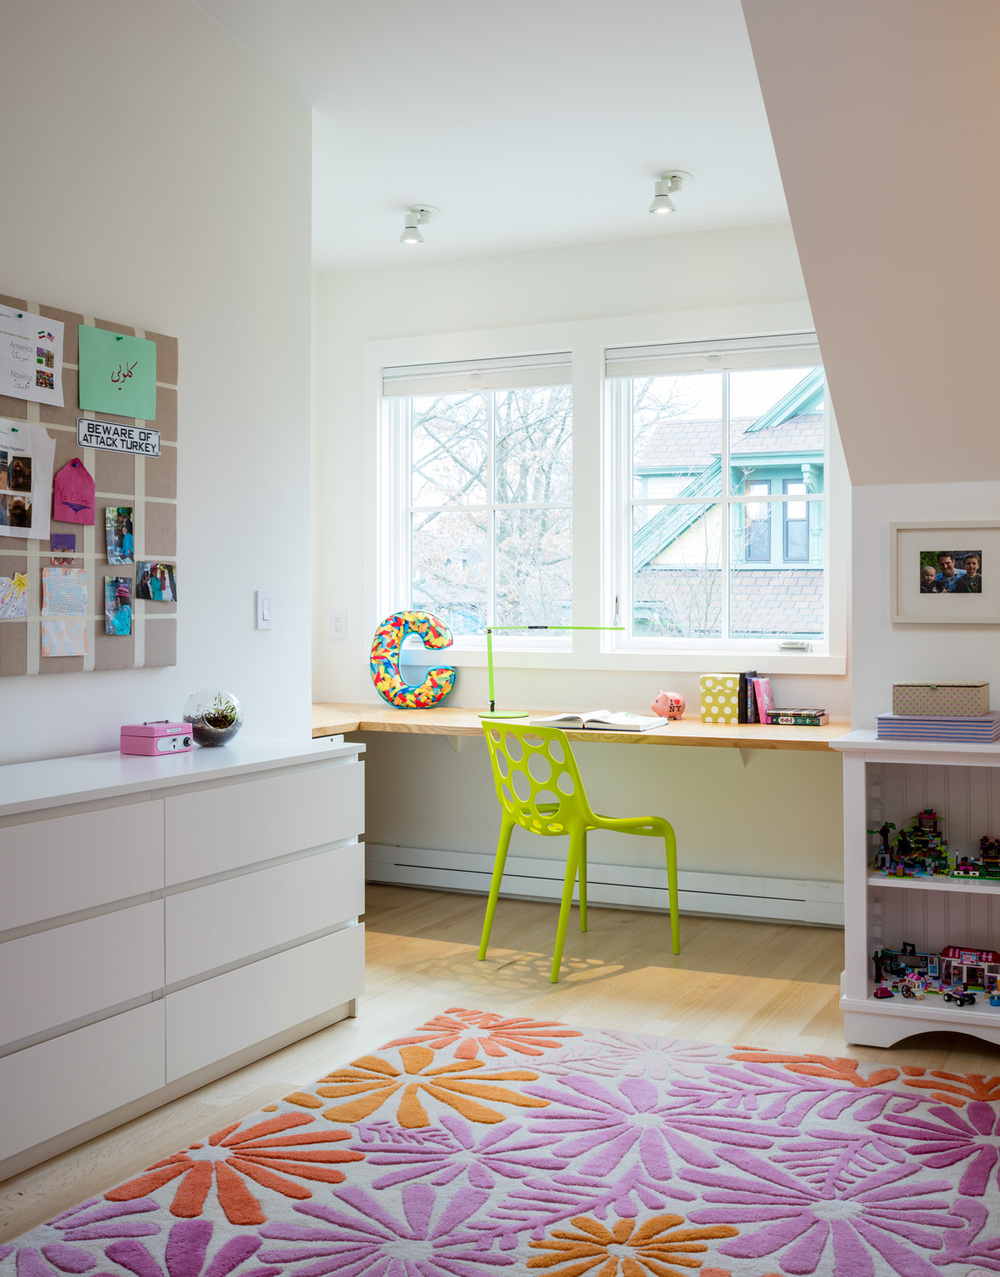 Childs Bedroom Study Area.jpg